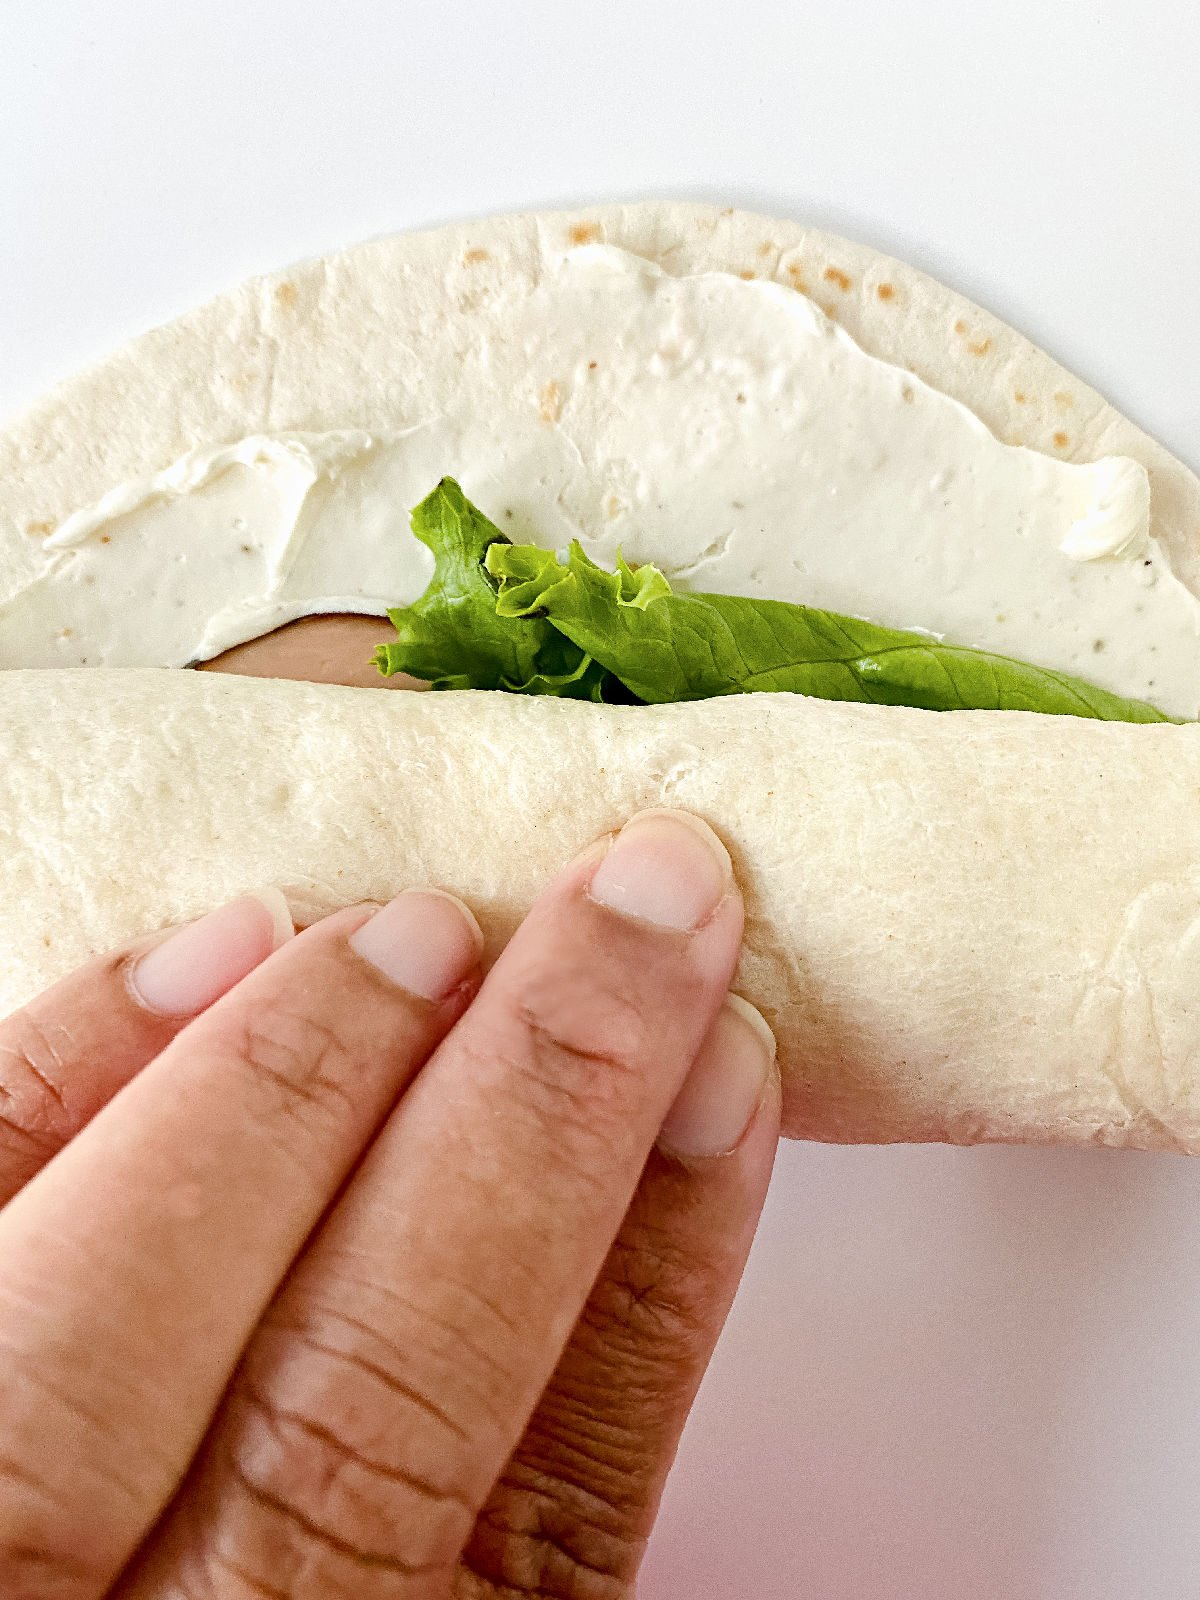 Woman's hand rolling a tortilla sandwich with cream cheese, turkey, and lettuce.